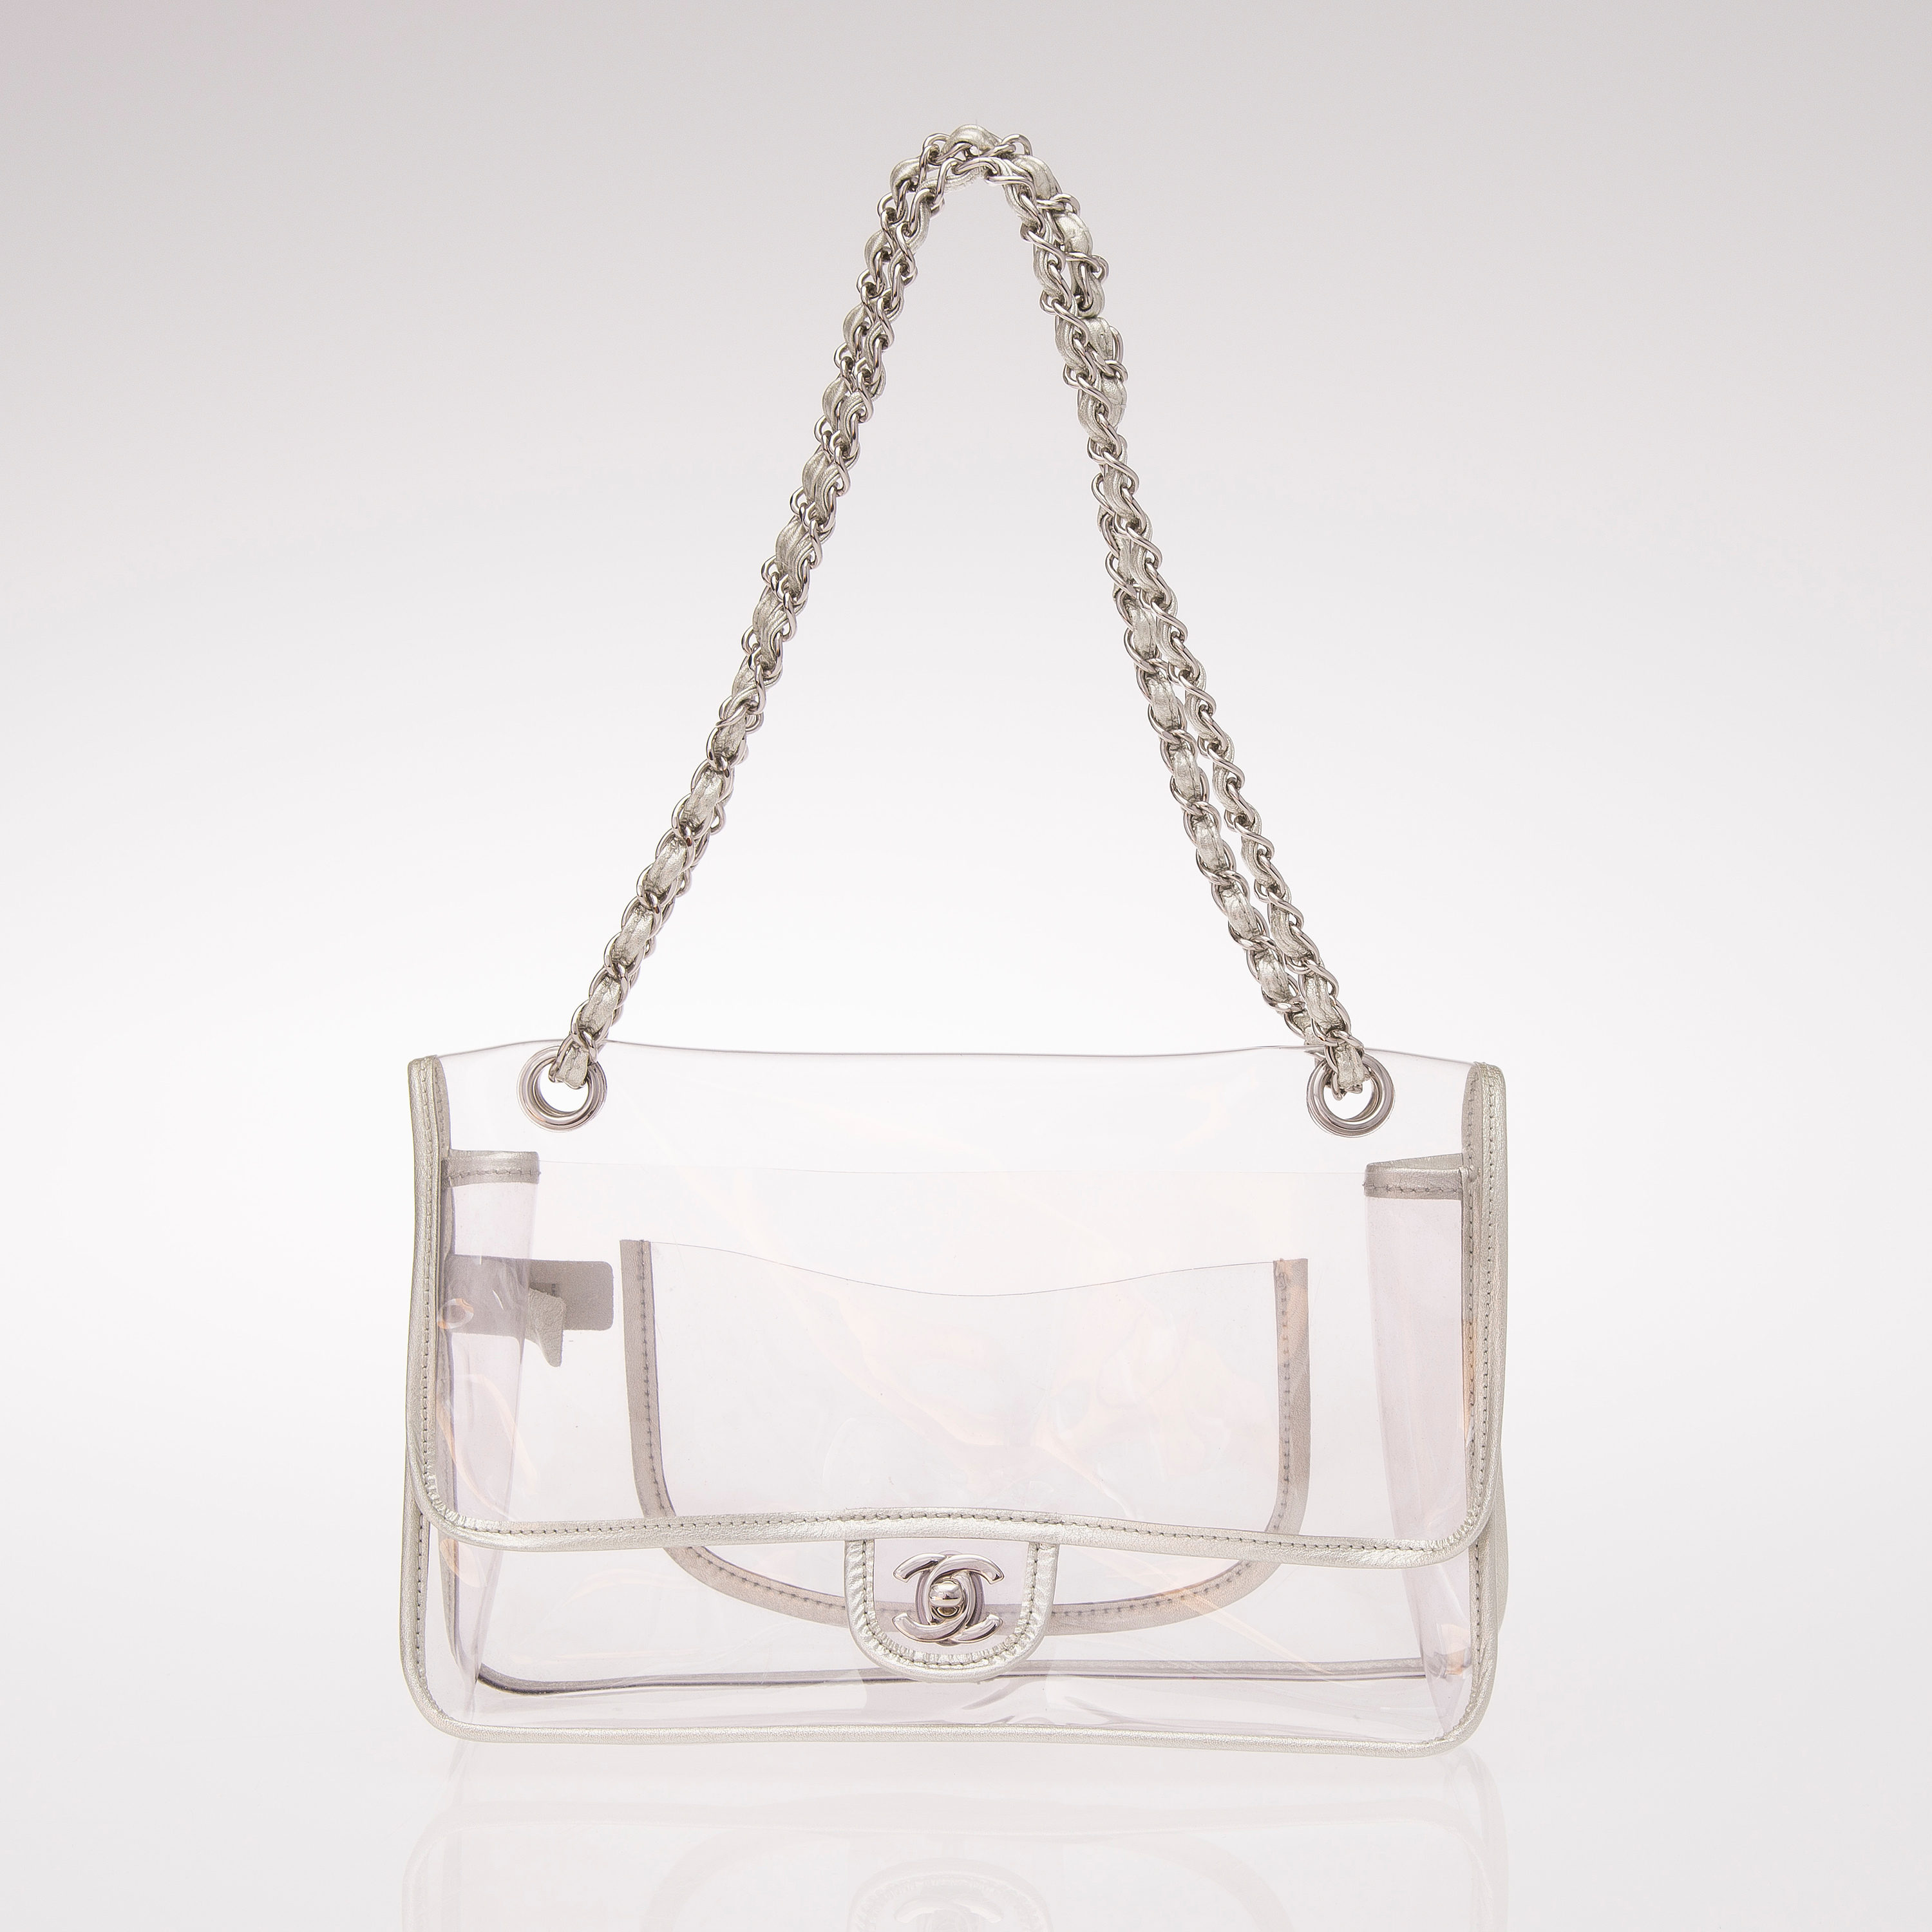 2a985df23f7b Naked Large Classic Flap Bag. Shoulder bag in clear PVC.